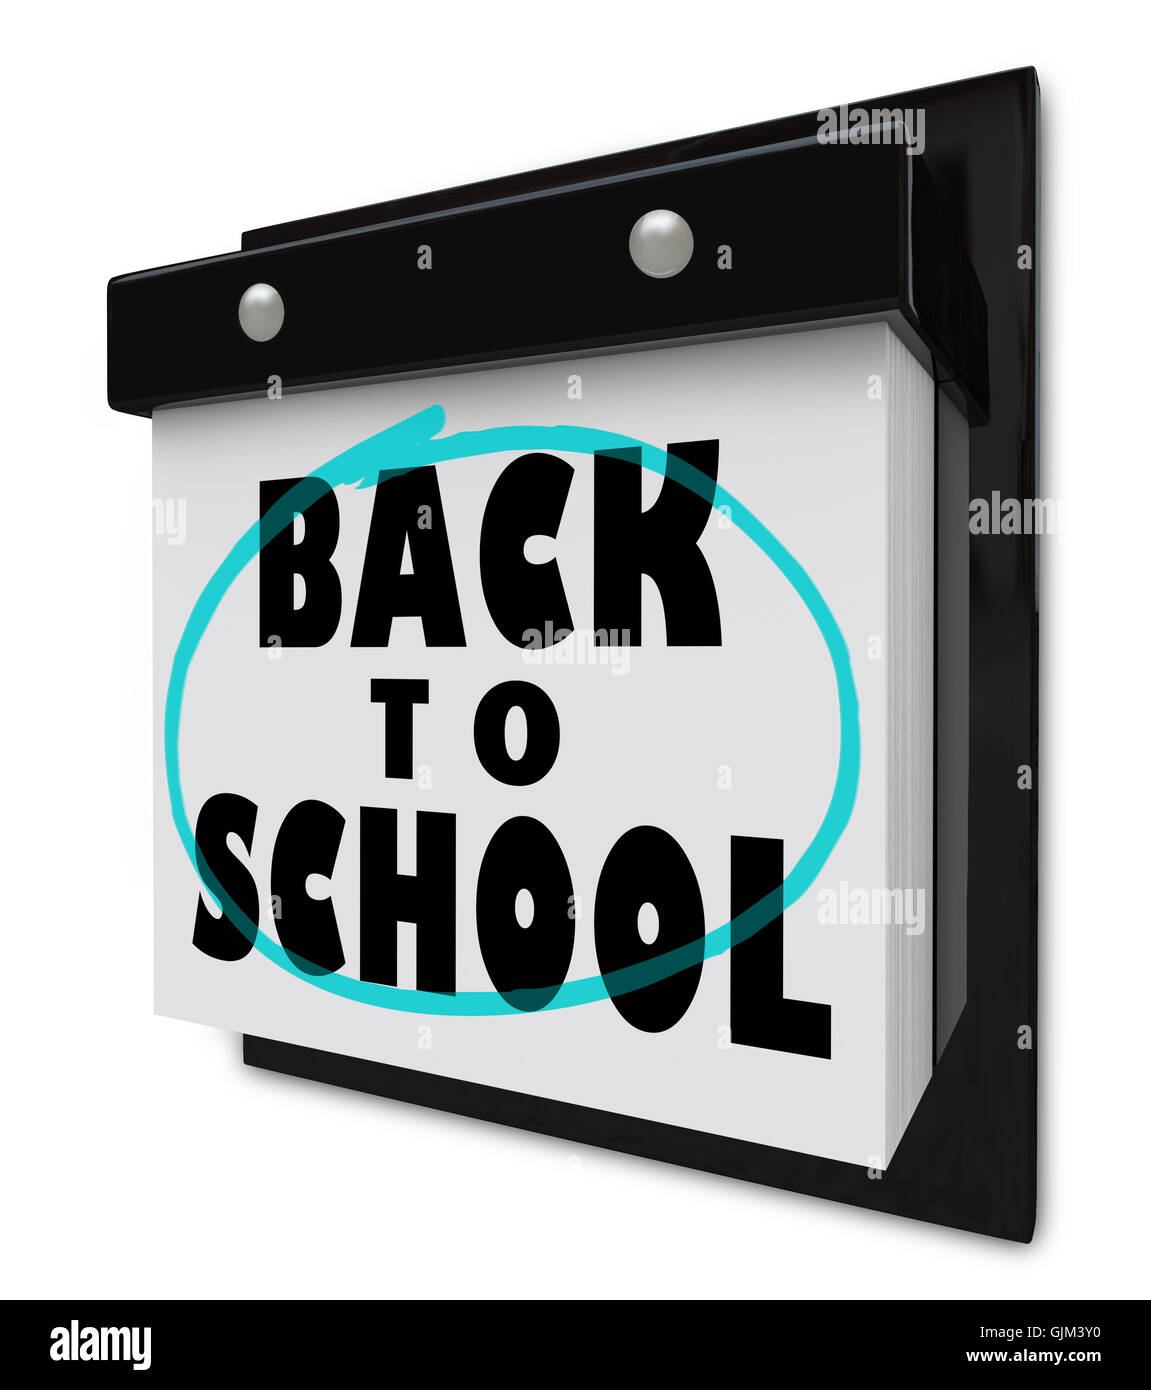 Back to School - Wall Calendar Reminder Classes Starting - Stock Image